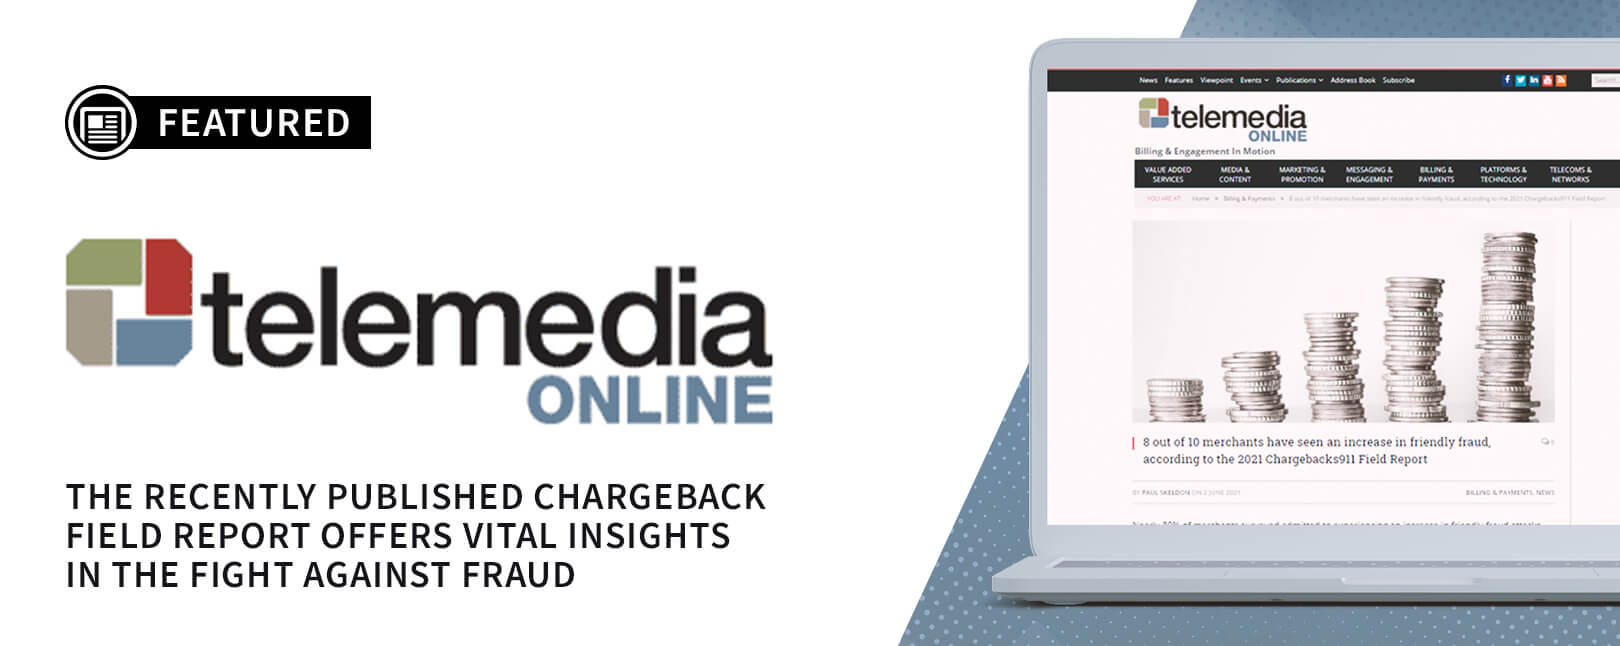 Chargebacks911® Chargeback Field Report Featured by Telemedia